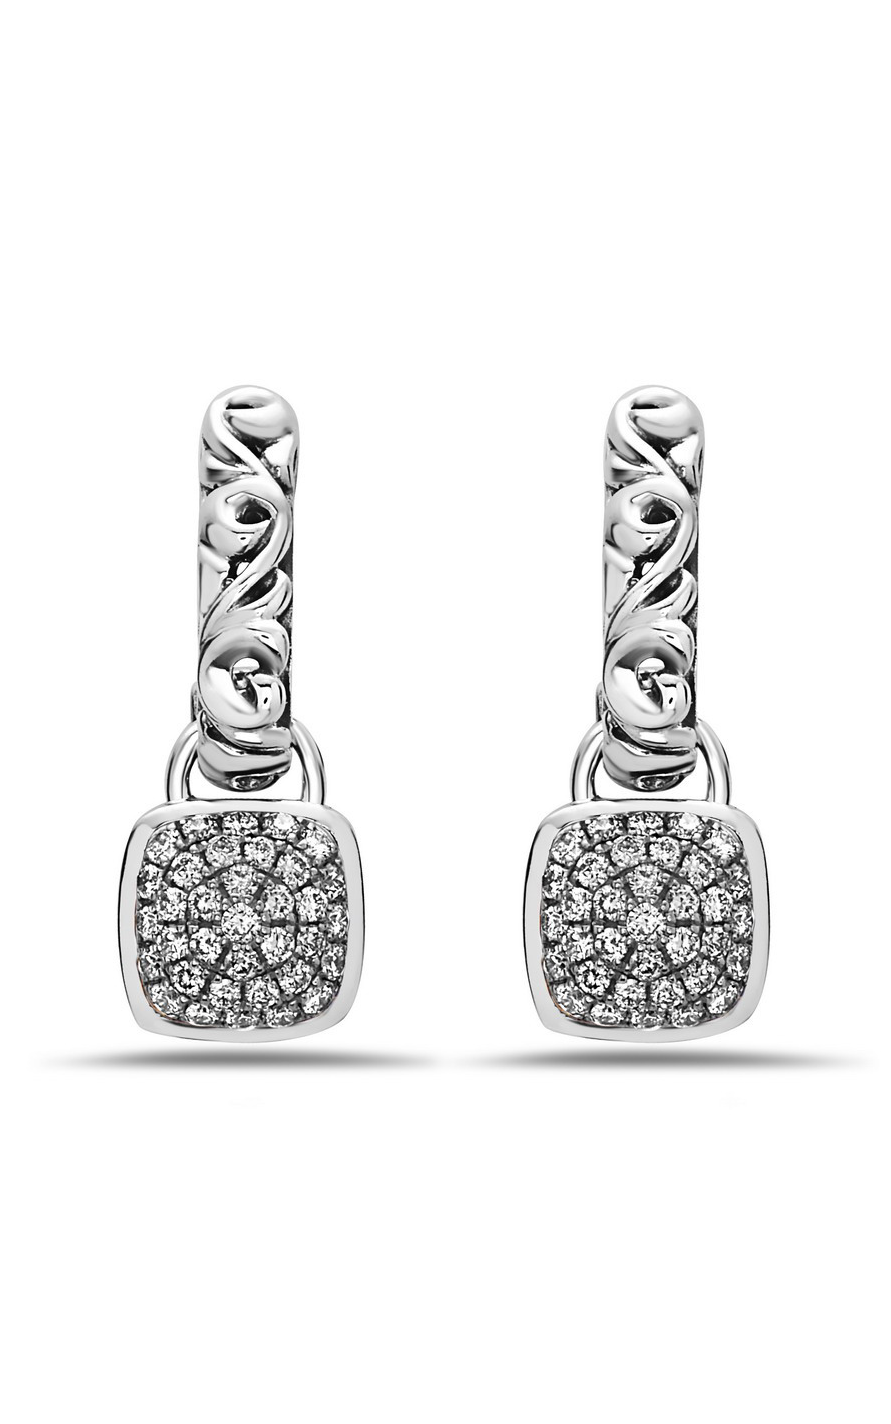 Charles Krypell Sterling Silver 1-6948-SWHTP product image